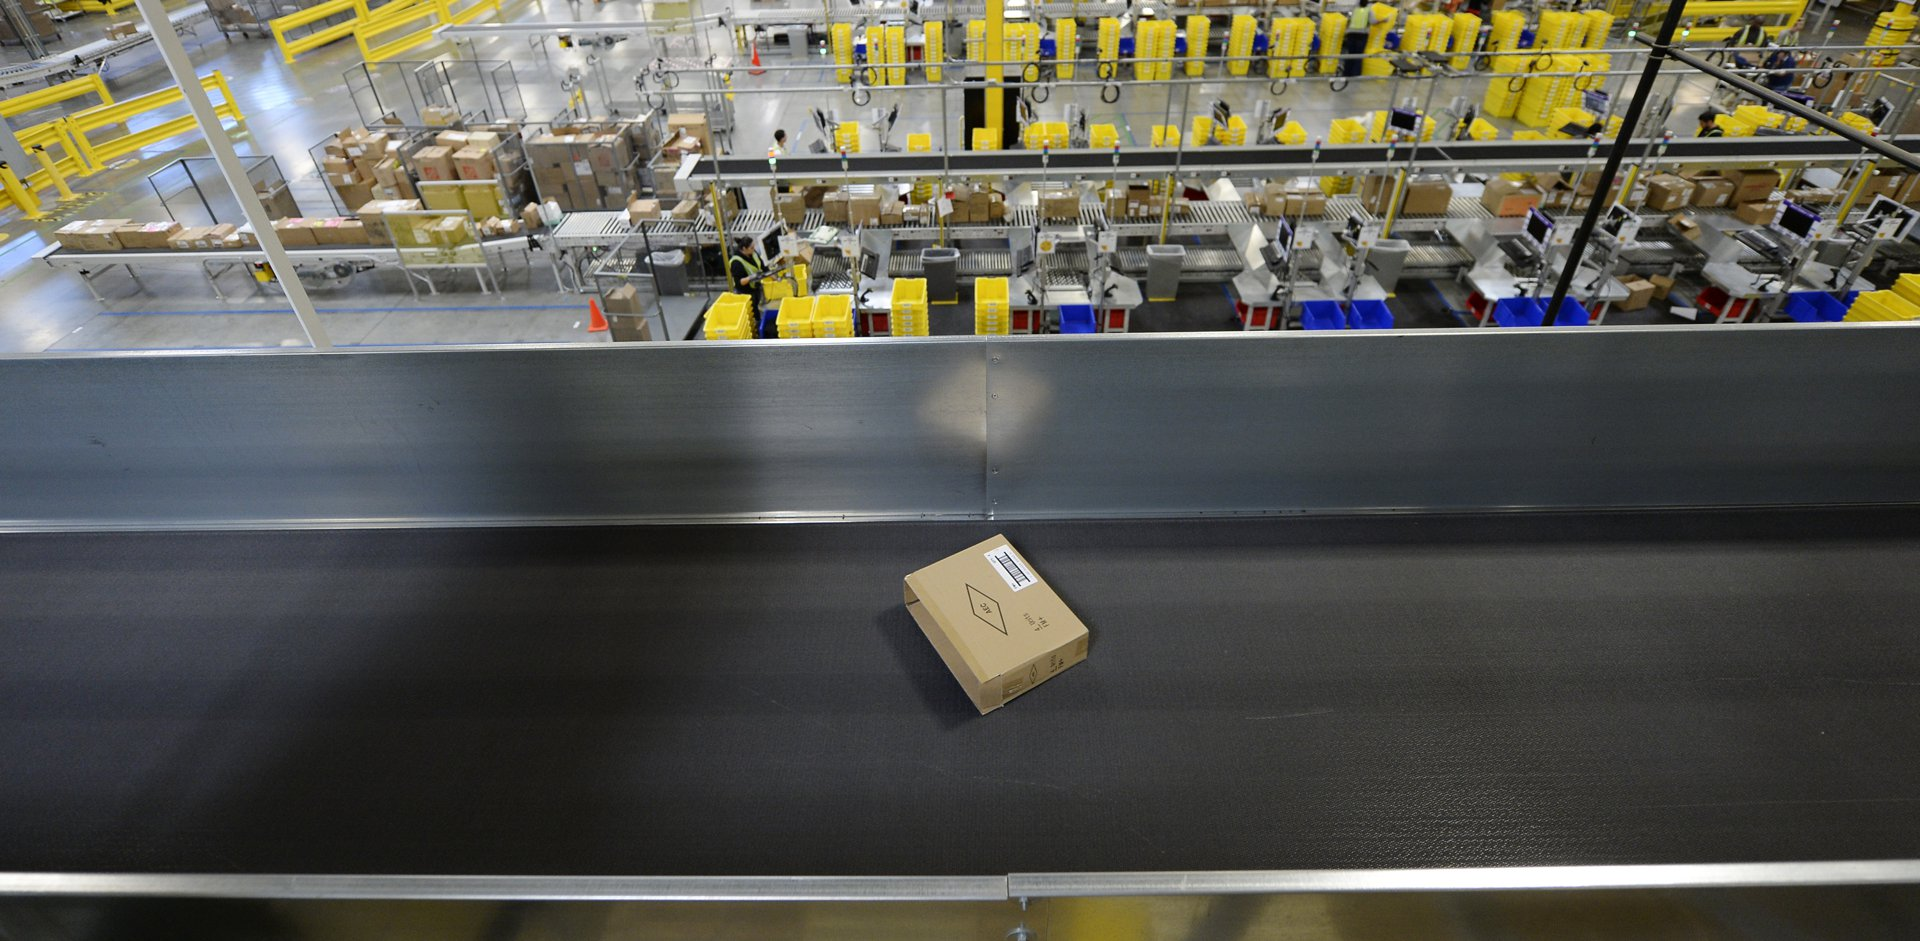 A cardboard box on a conveyor belt